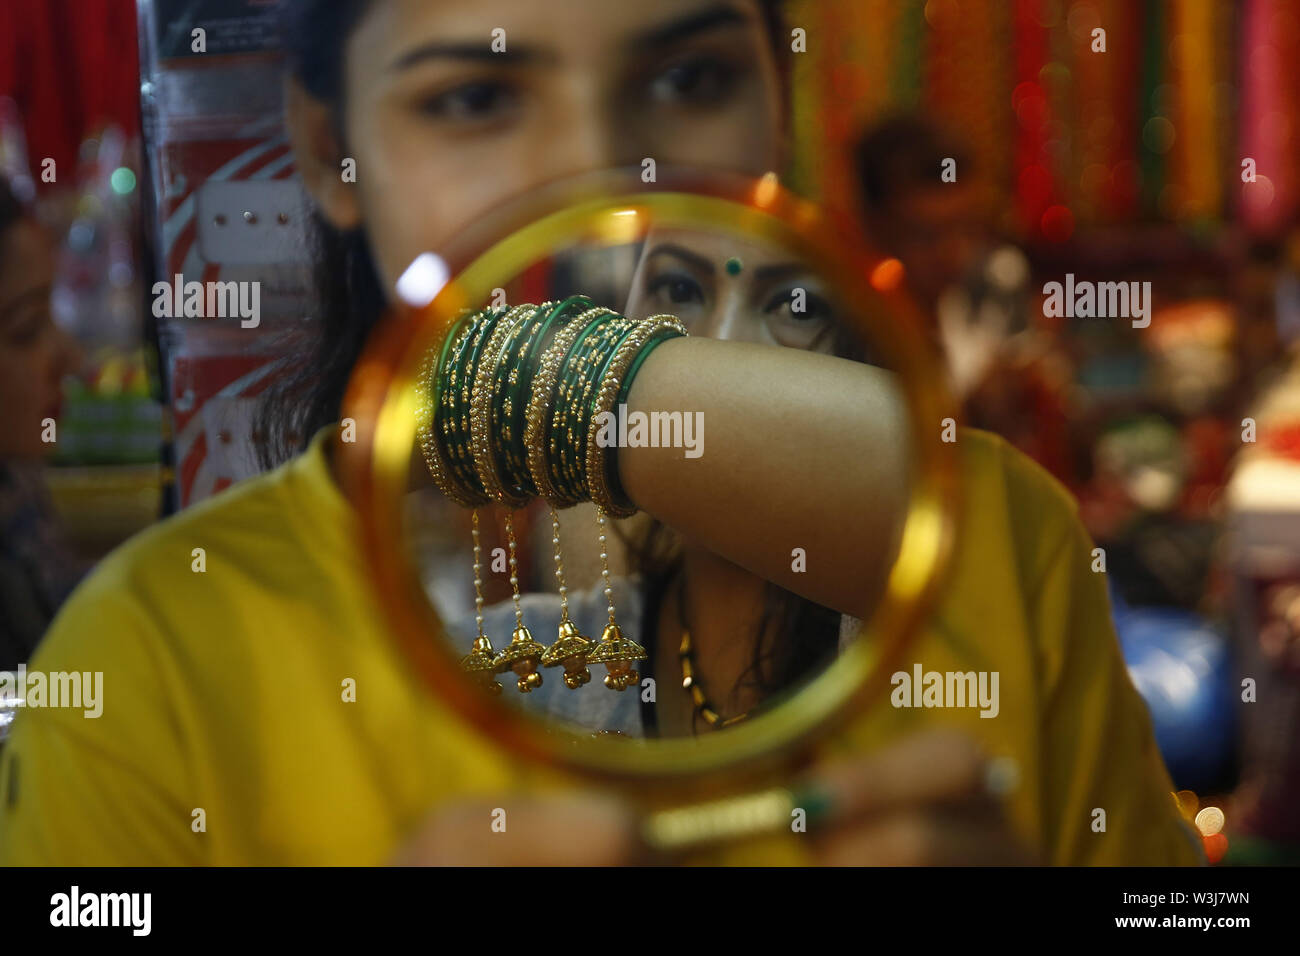 Kathmandu, Nepal. 16th July, 2019. A woman trying on bangles for Shravan, a month when women worship Lord Shiva, at a store in Indra Chowk, Kathmandu, Nepal on Tuesday, July 16, 2019. Credit: Skanda Gautam/ZUMA Wire/Alamy Live News - Stock Image